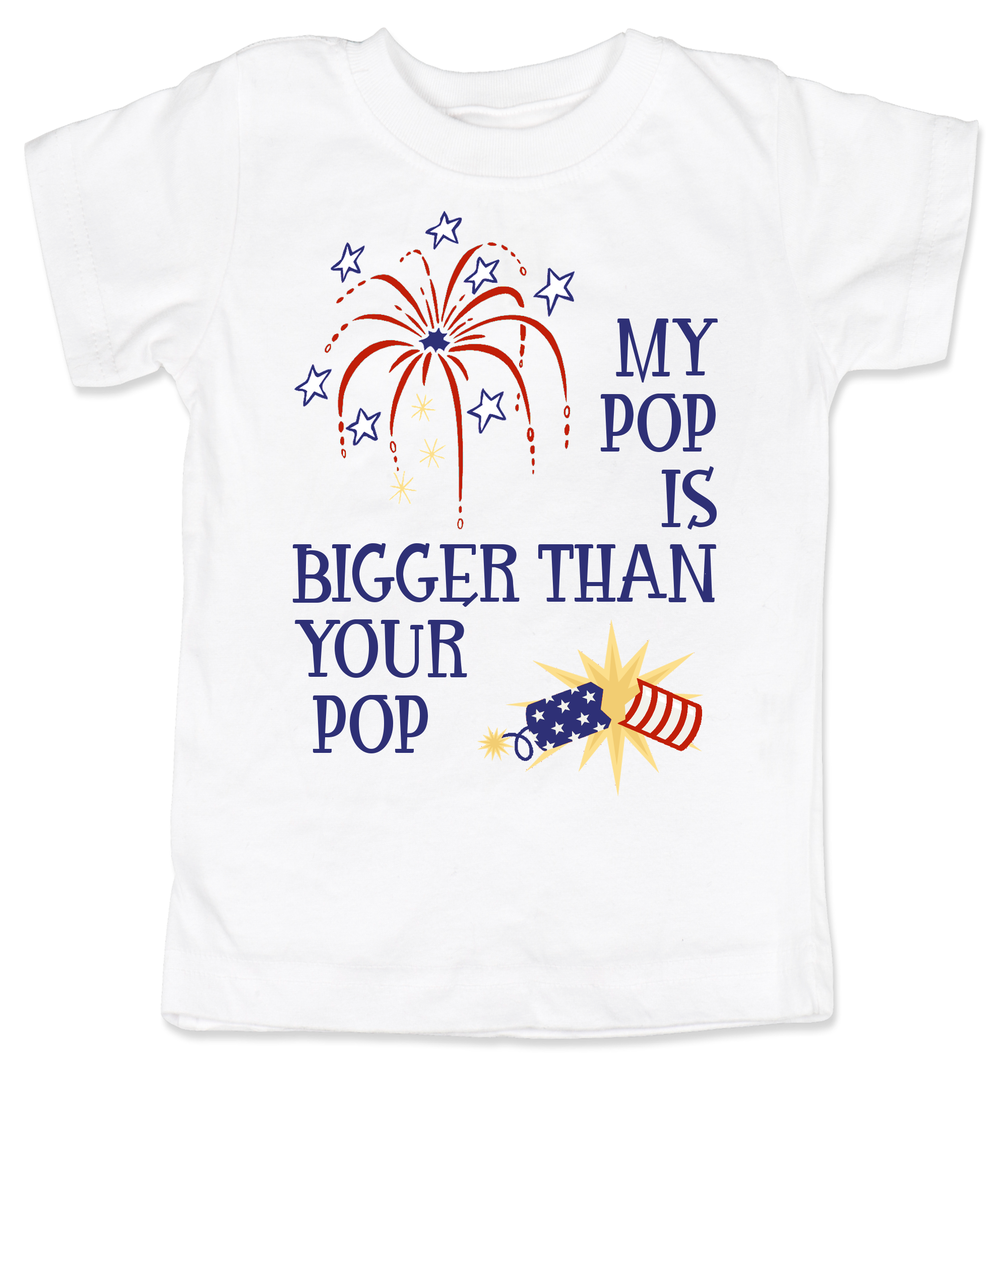 220ca492e My Pop is bigger than your pop, 4th of July toddler shirt, patriotic kid